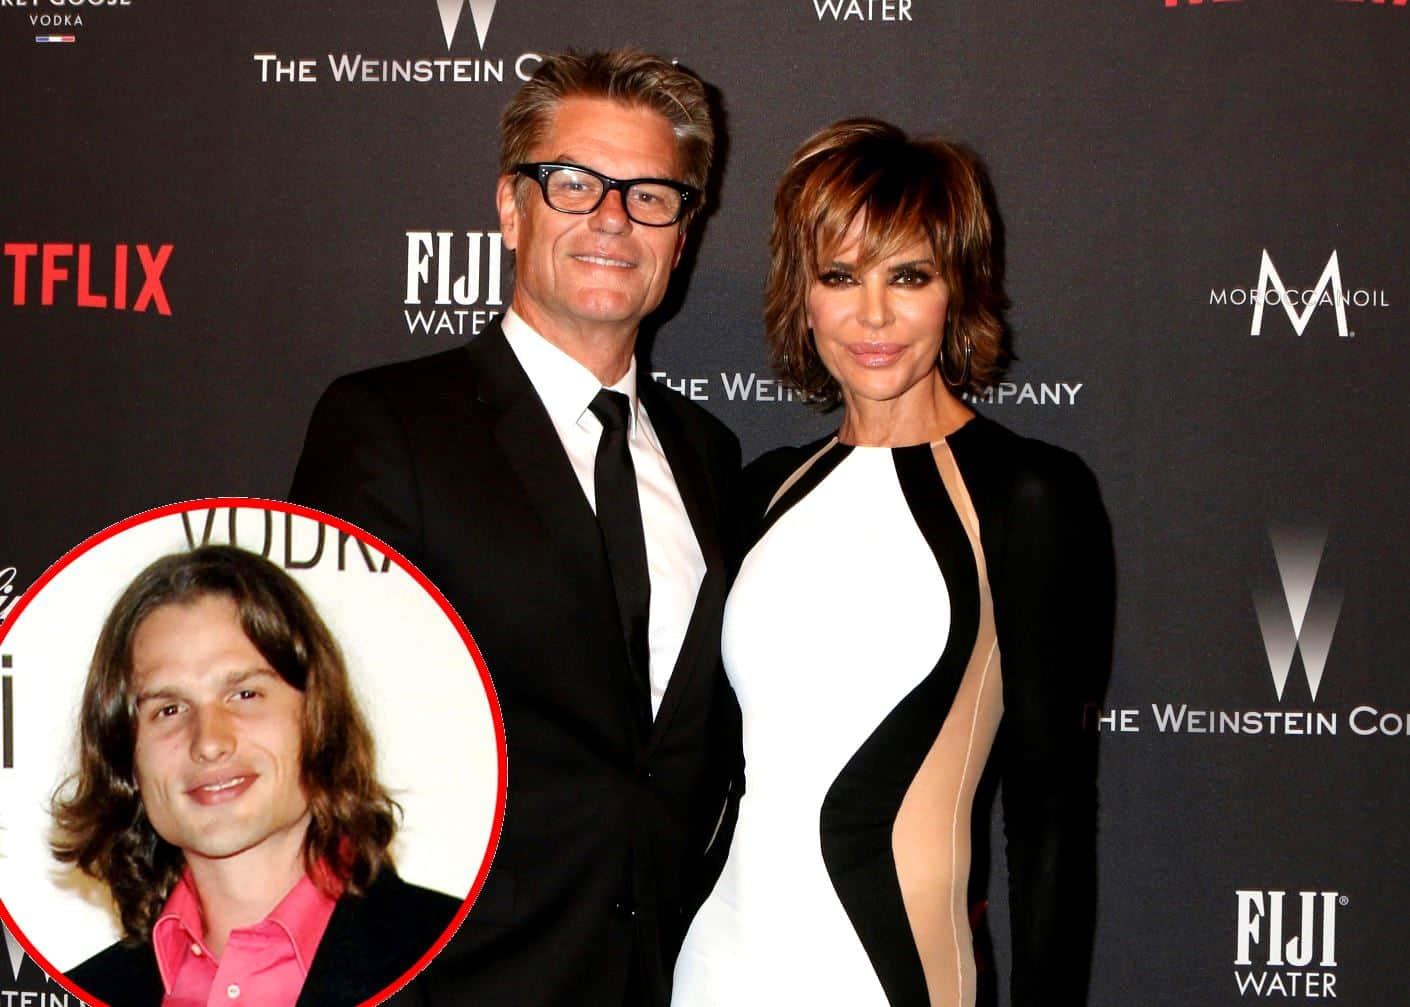 Lisa Rinna's Husband Harry Hamlin talks RHOBH Drama plus Harry's Son Dimitri Hamlin